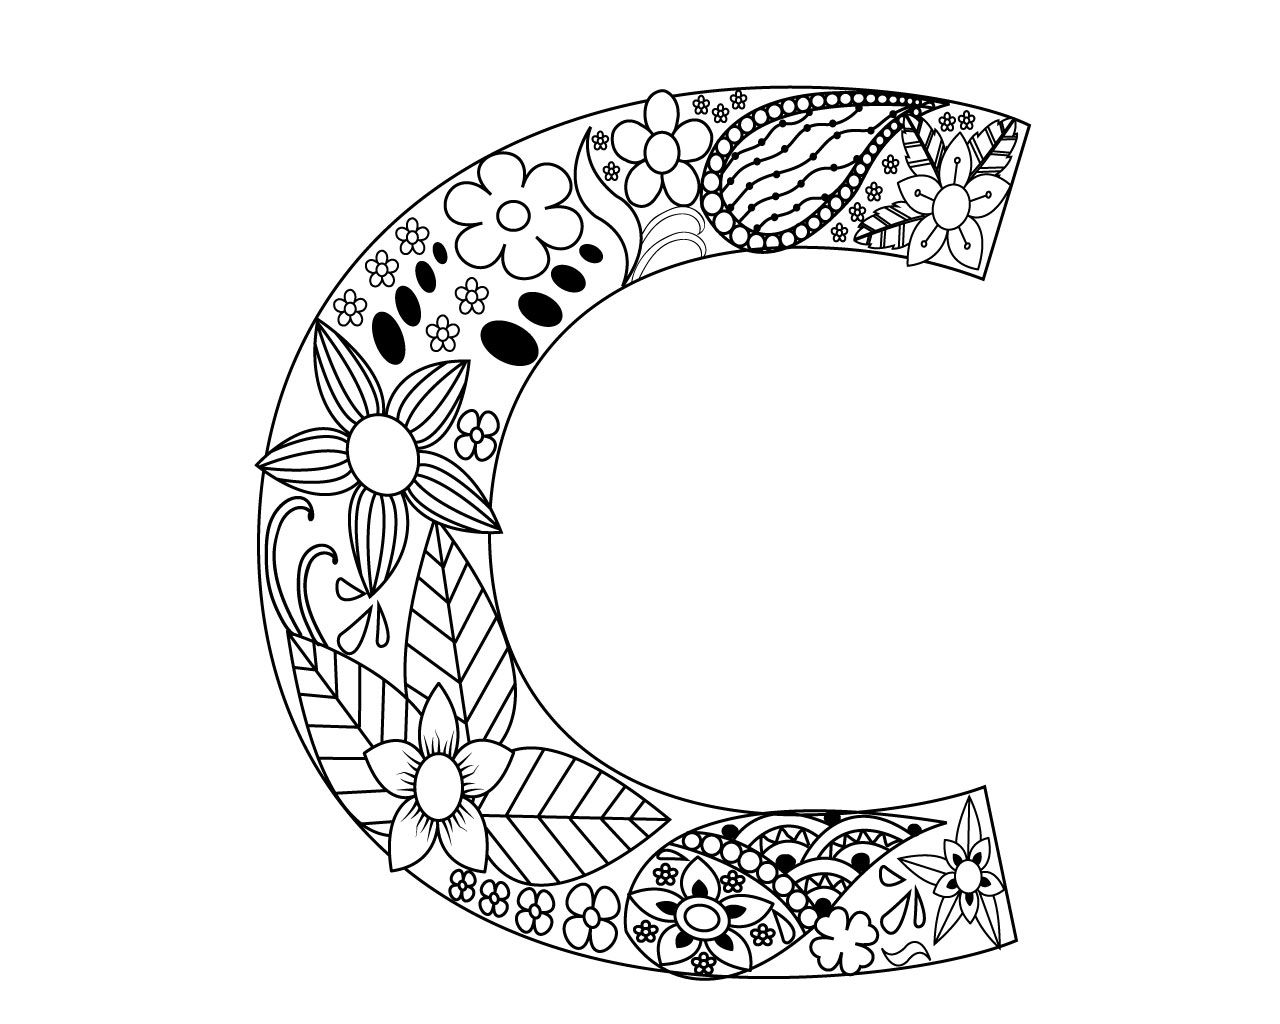 letter c coloring pages for adults free printable floral letter quotcquot adult coloring page c pages letter for coloring adults